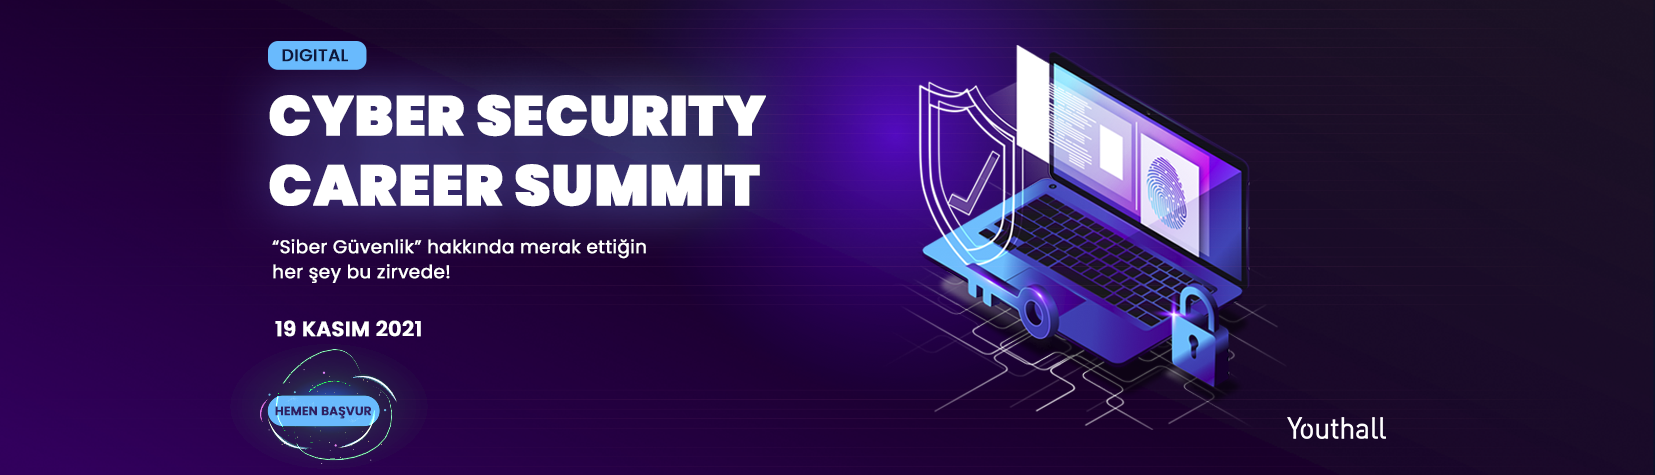 Youthall - Cyber Security Career Summit slides img